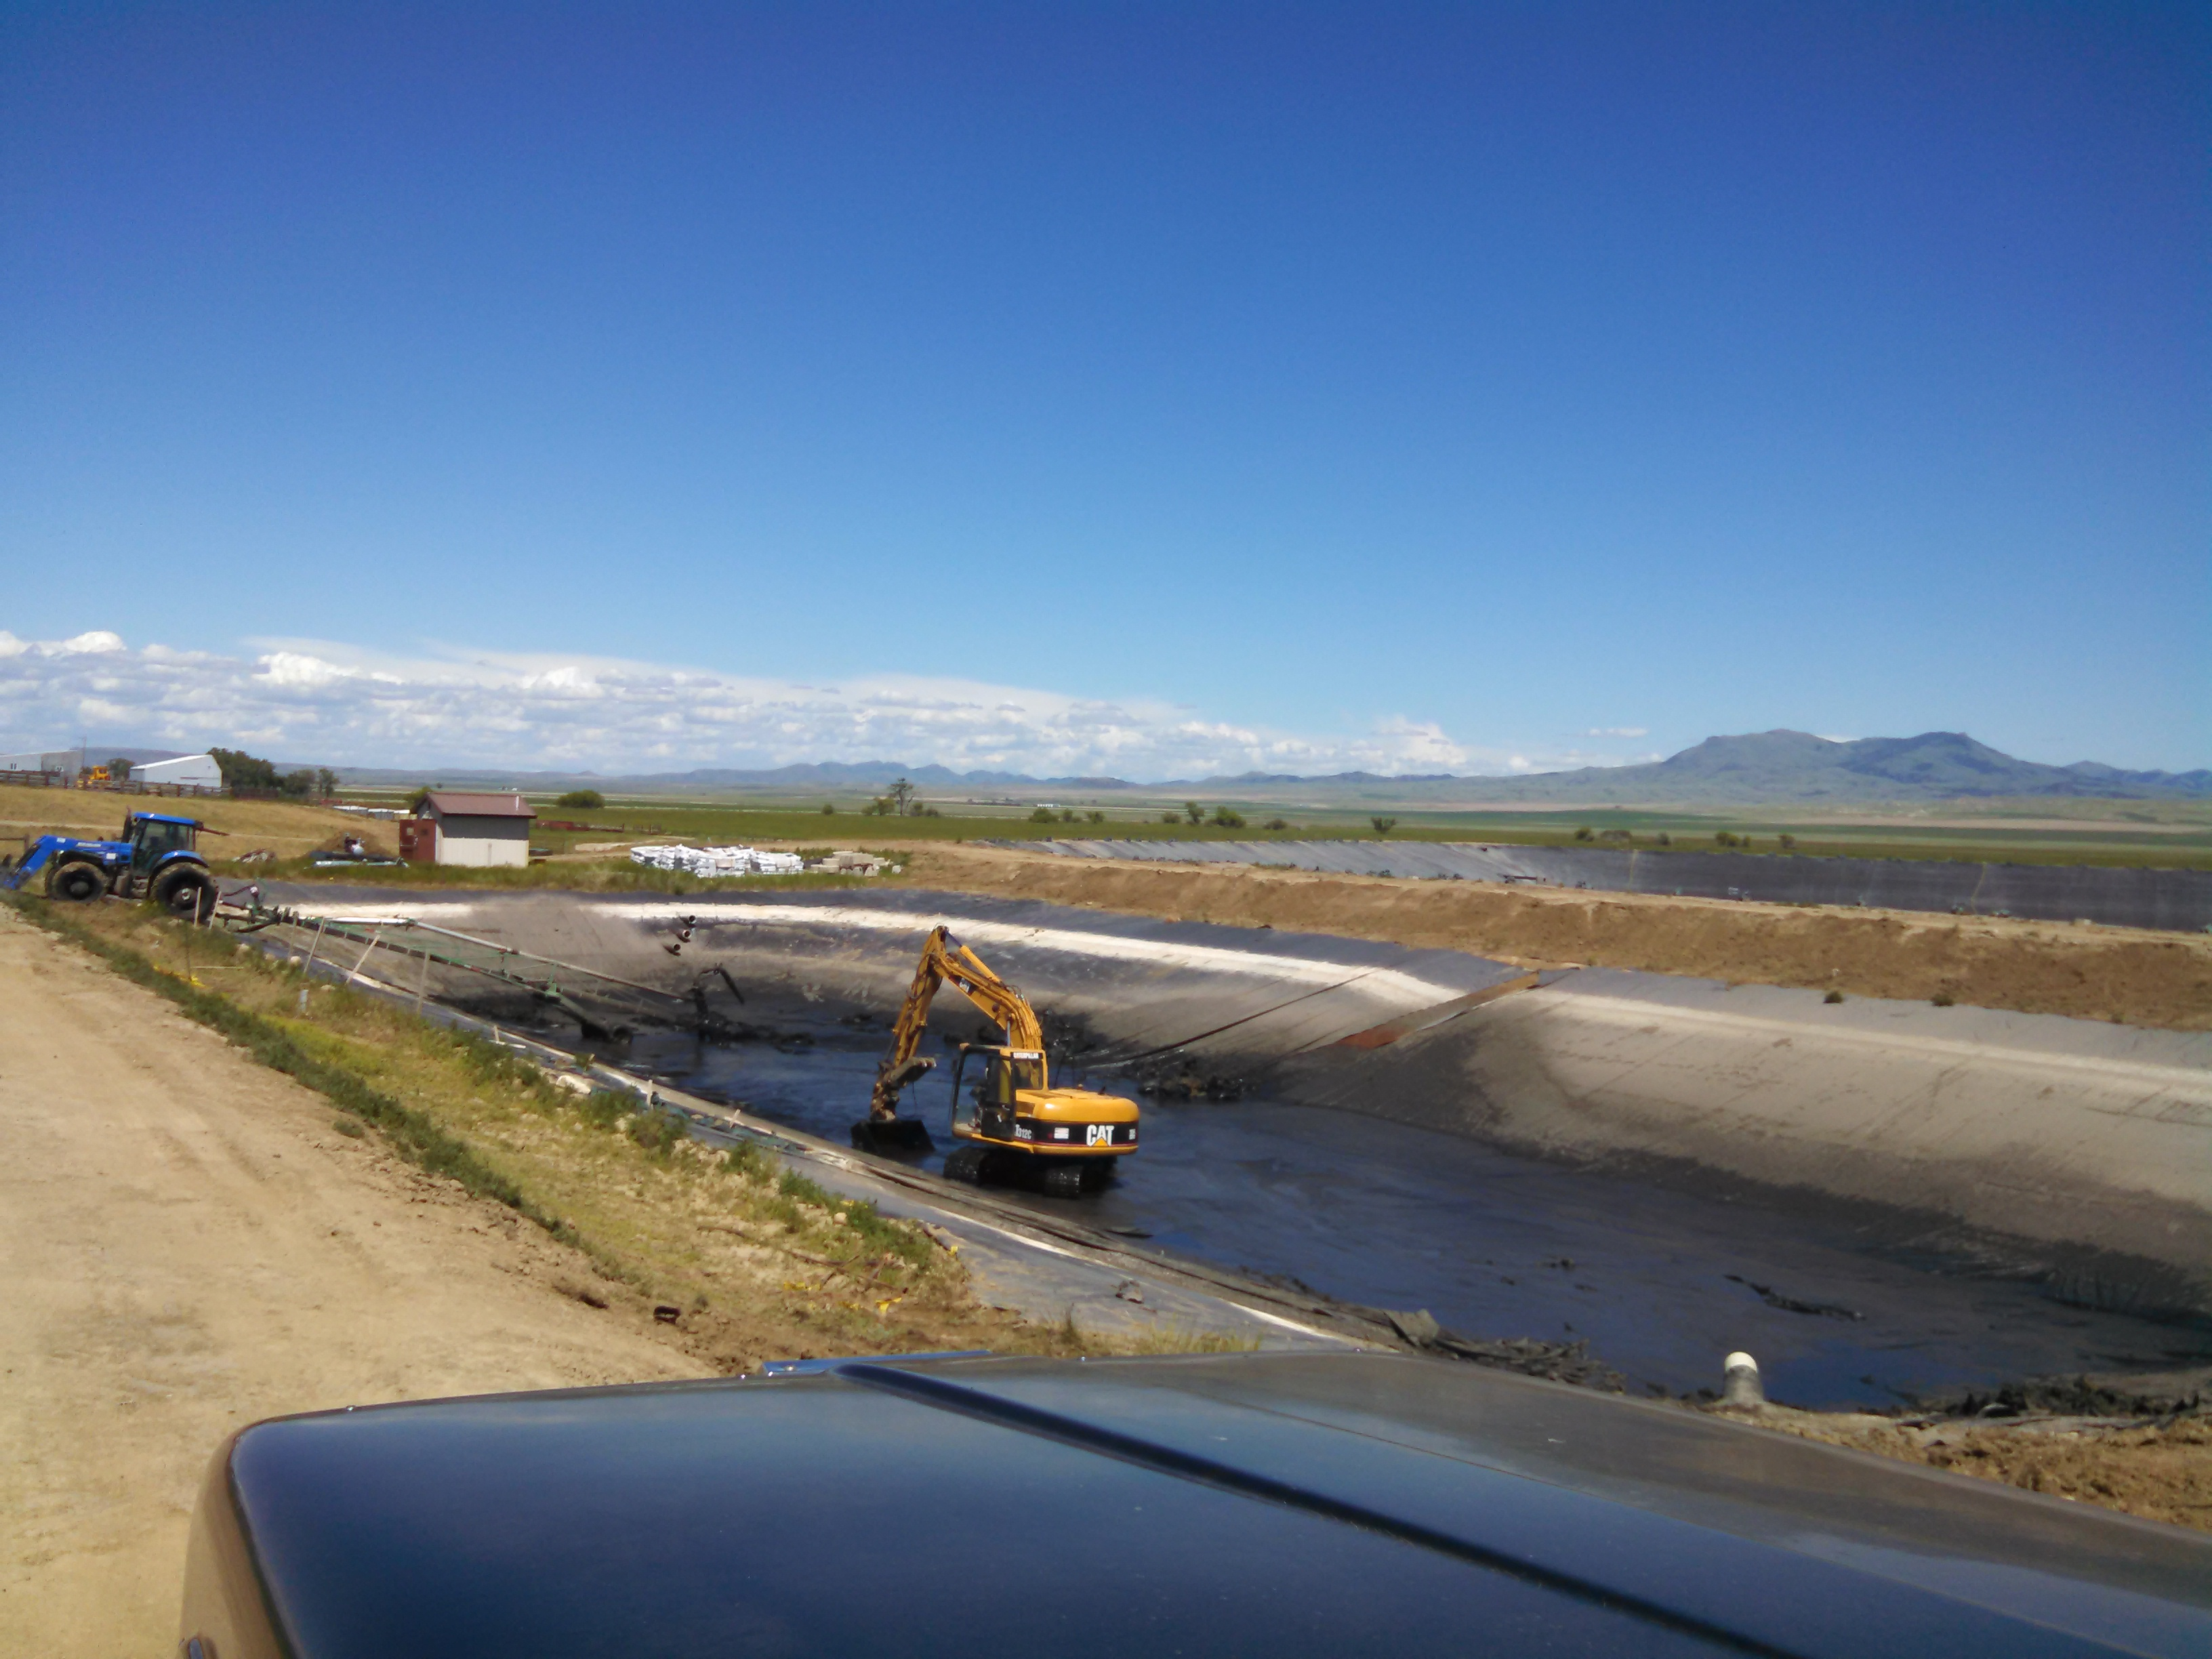 Big Sandy - Cleaning sludge out of old sewage lagoon